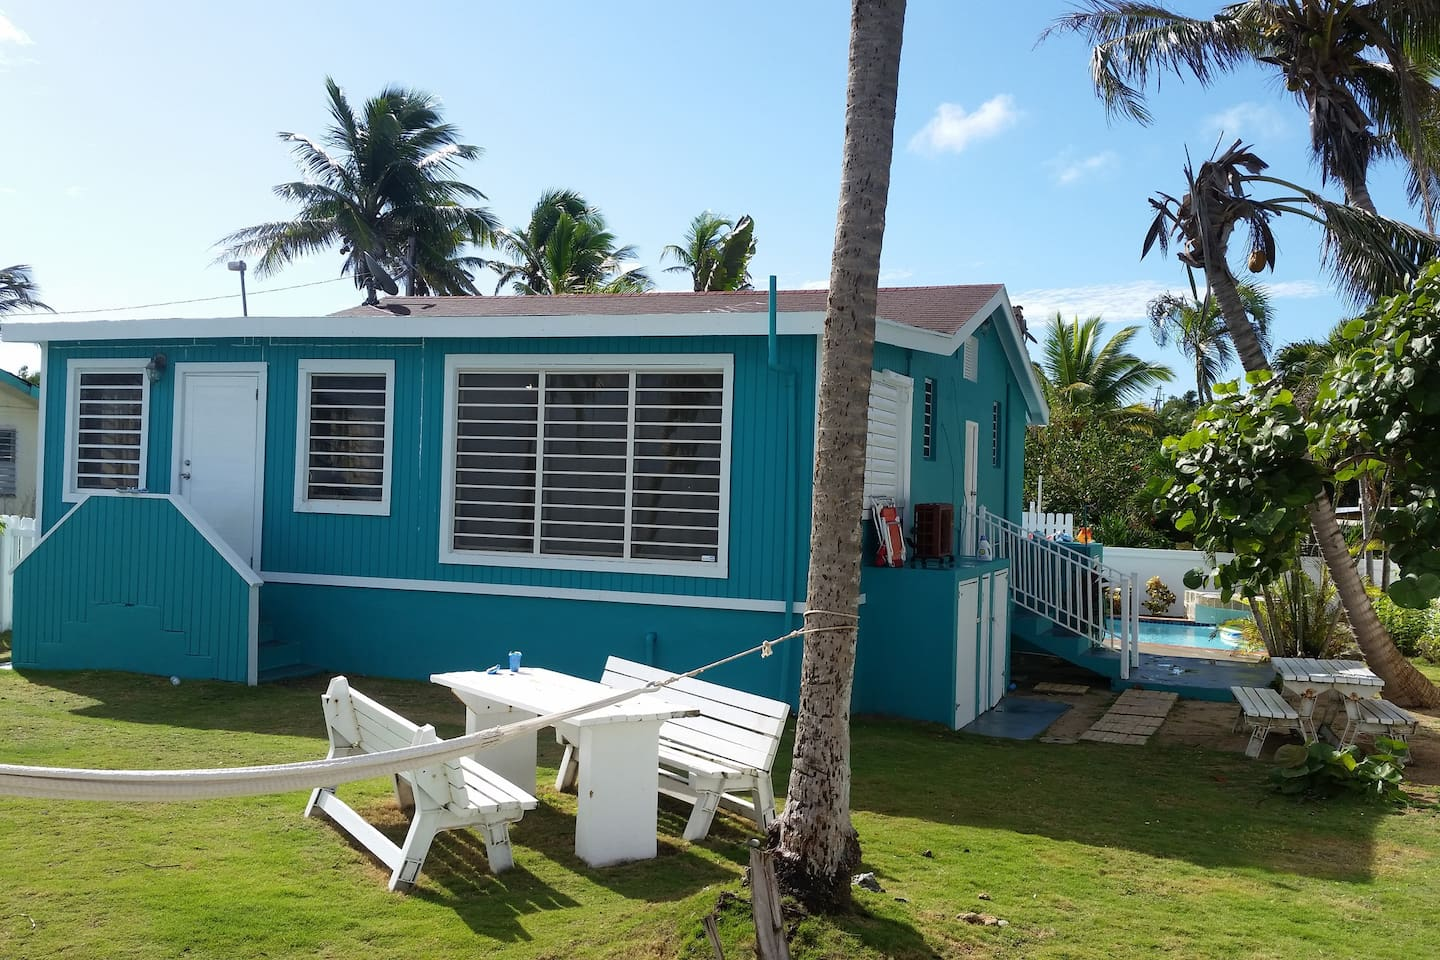 Cozy 3 bedroom bungalow has a peaceful yard to relax in & enjoy sound of waves